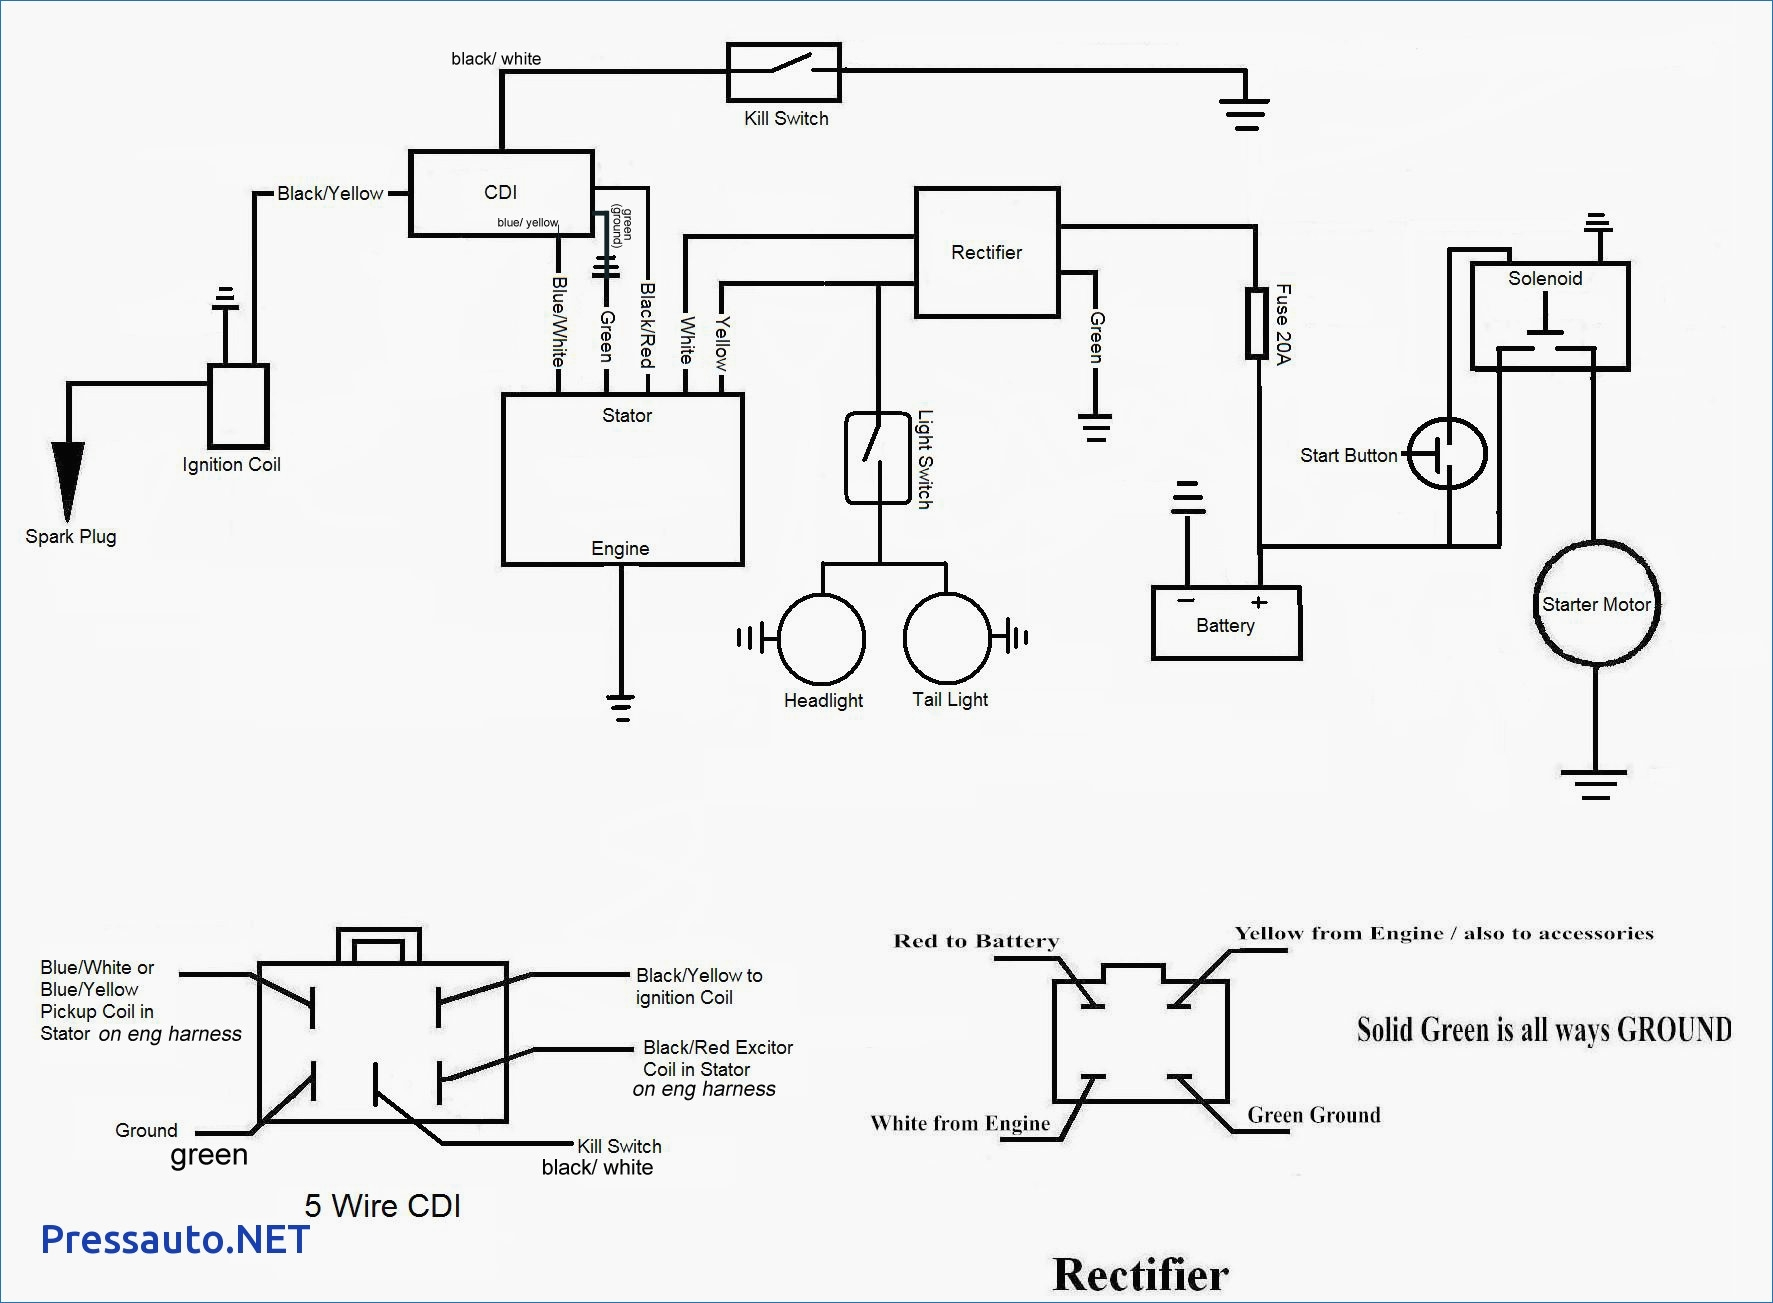 related with joyner quad 125 wiring diagram